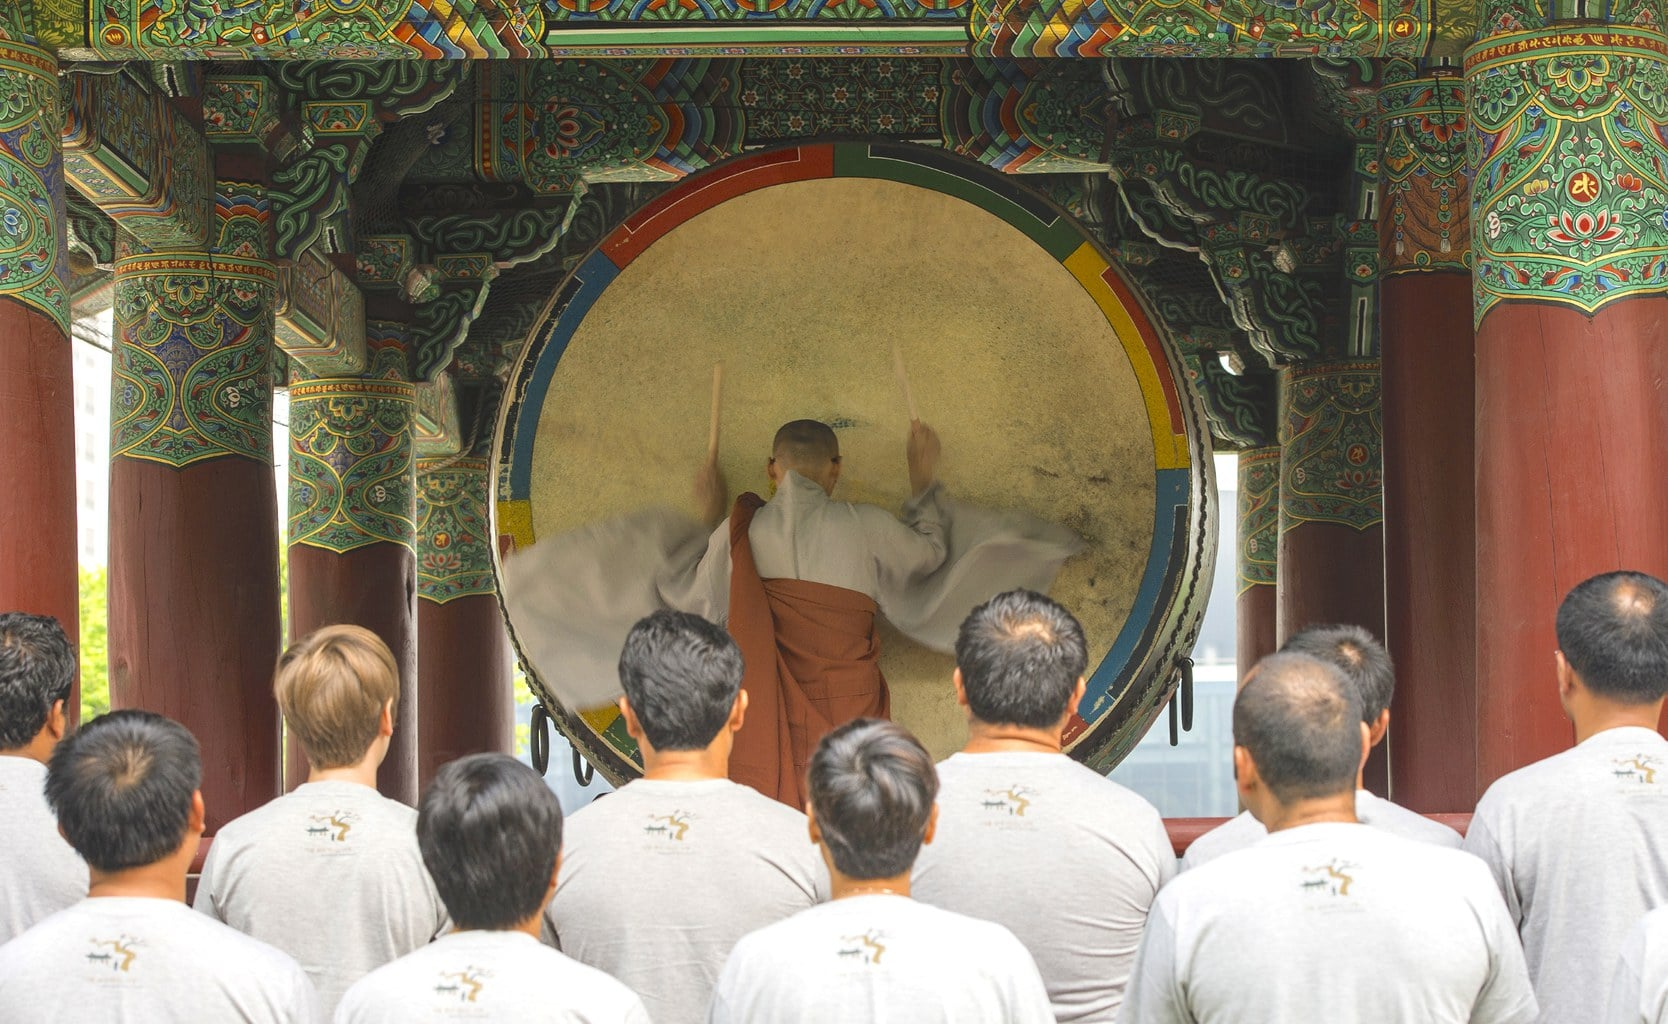 Monk and temple-stay participants at Bonguensa Temple